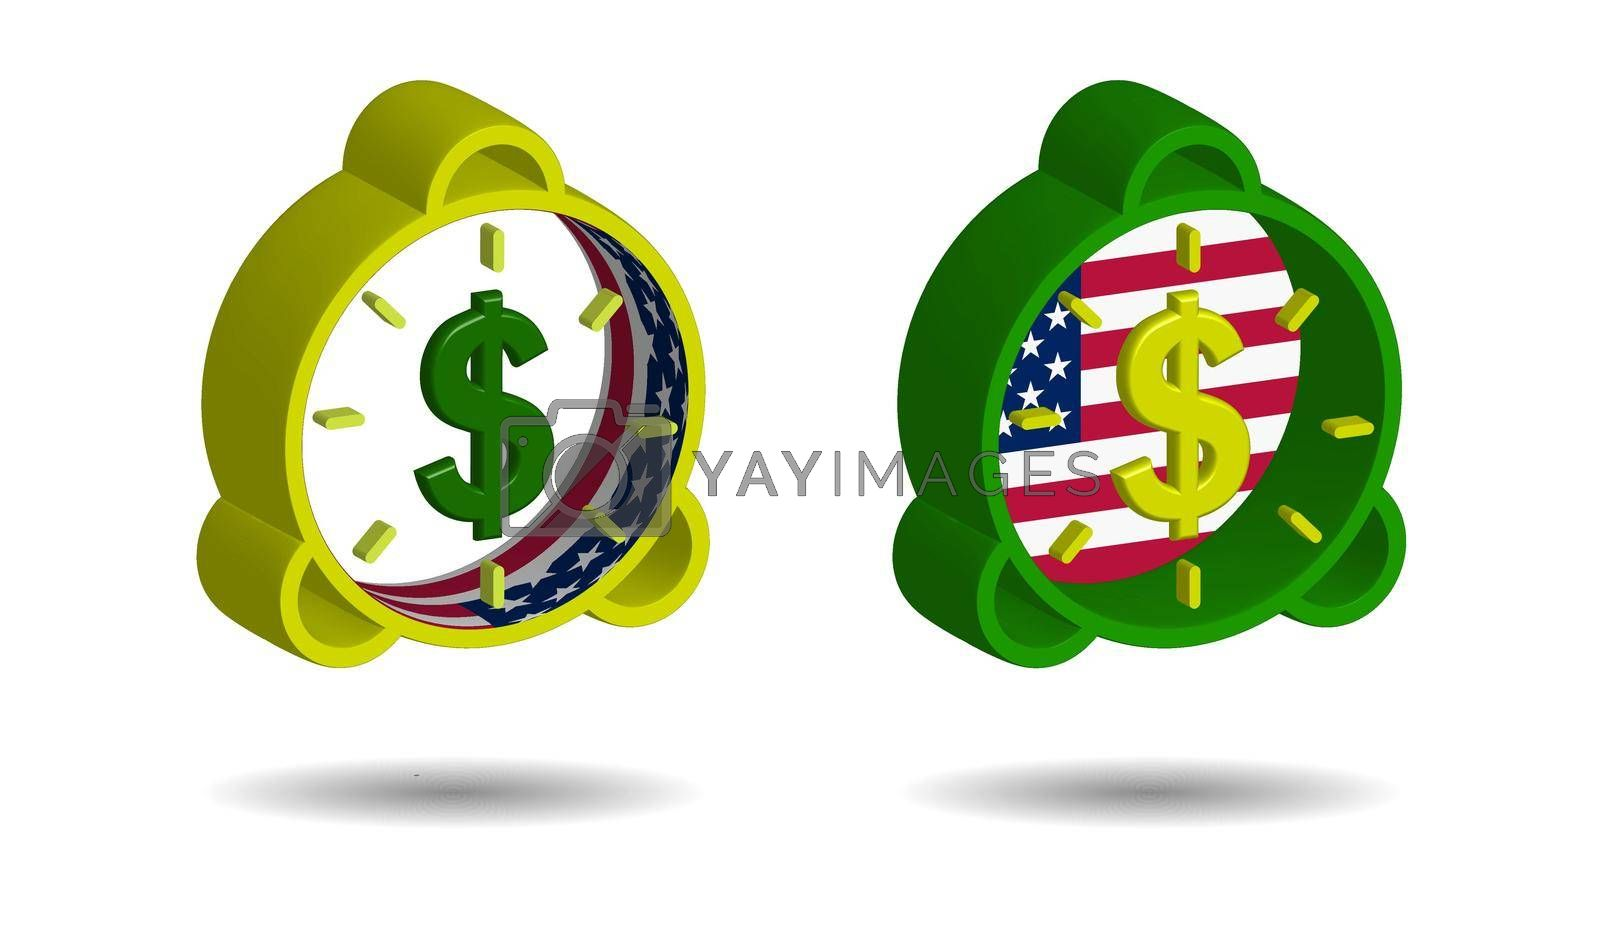 set of multi-colored alarm clocks in 3D style with us dollar sign and american flag elements on a transparent background by RNko